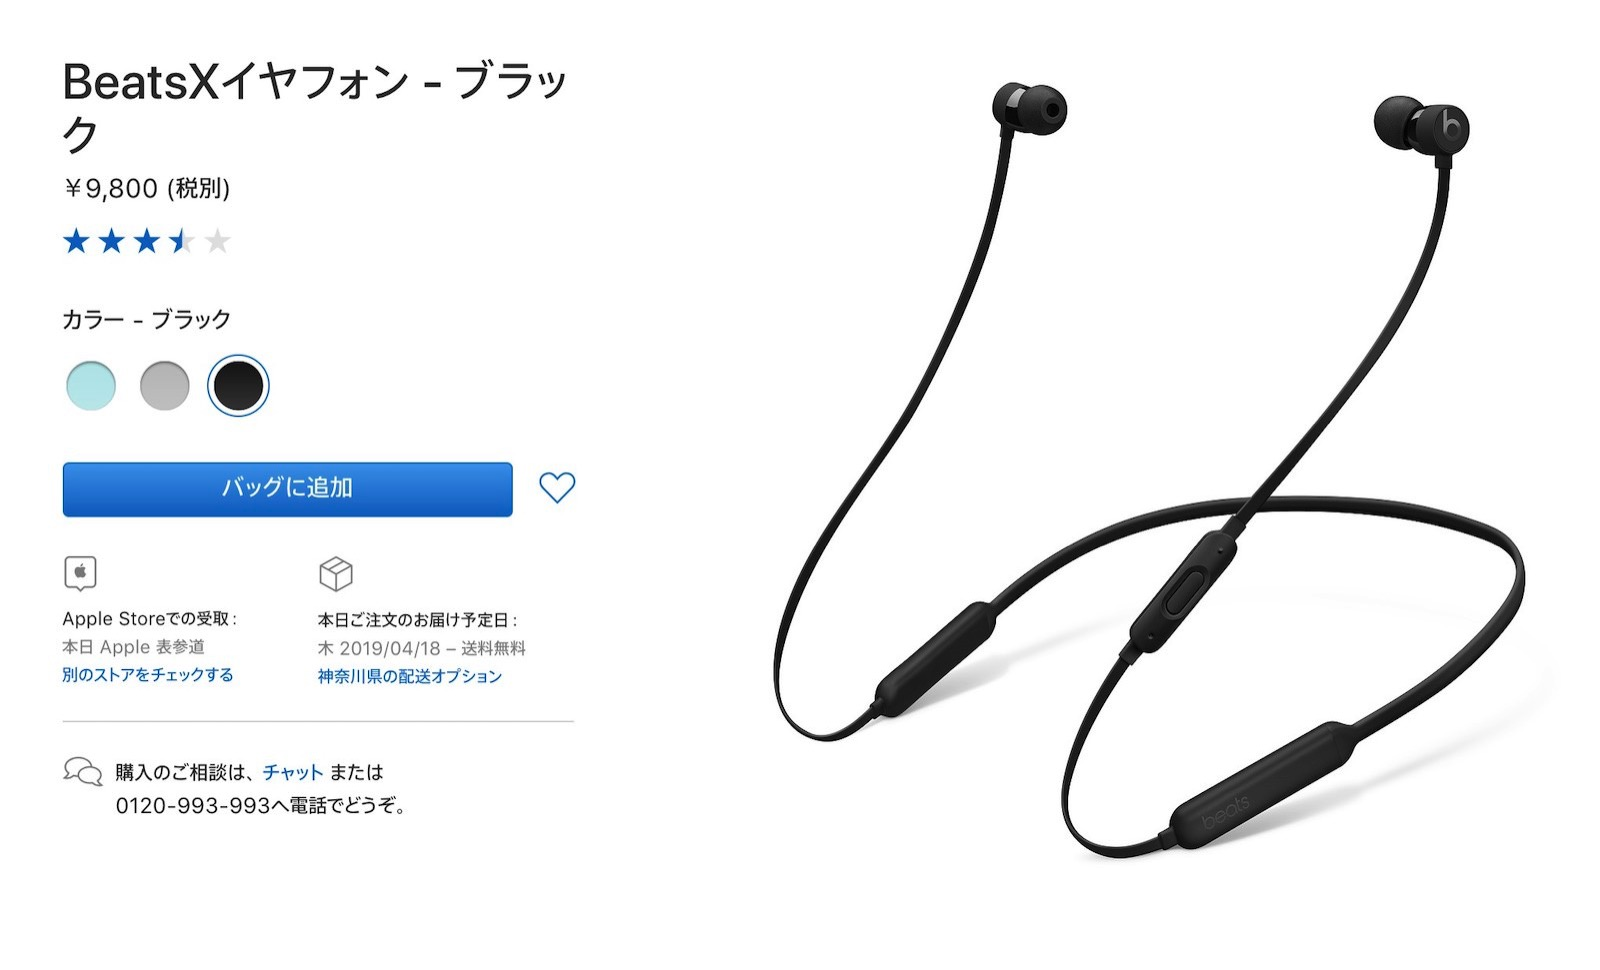 BeatsX lowers price again